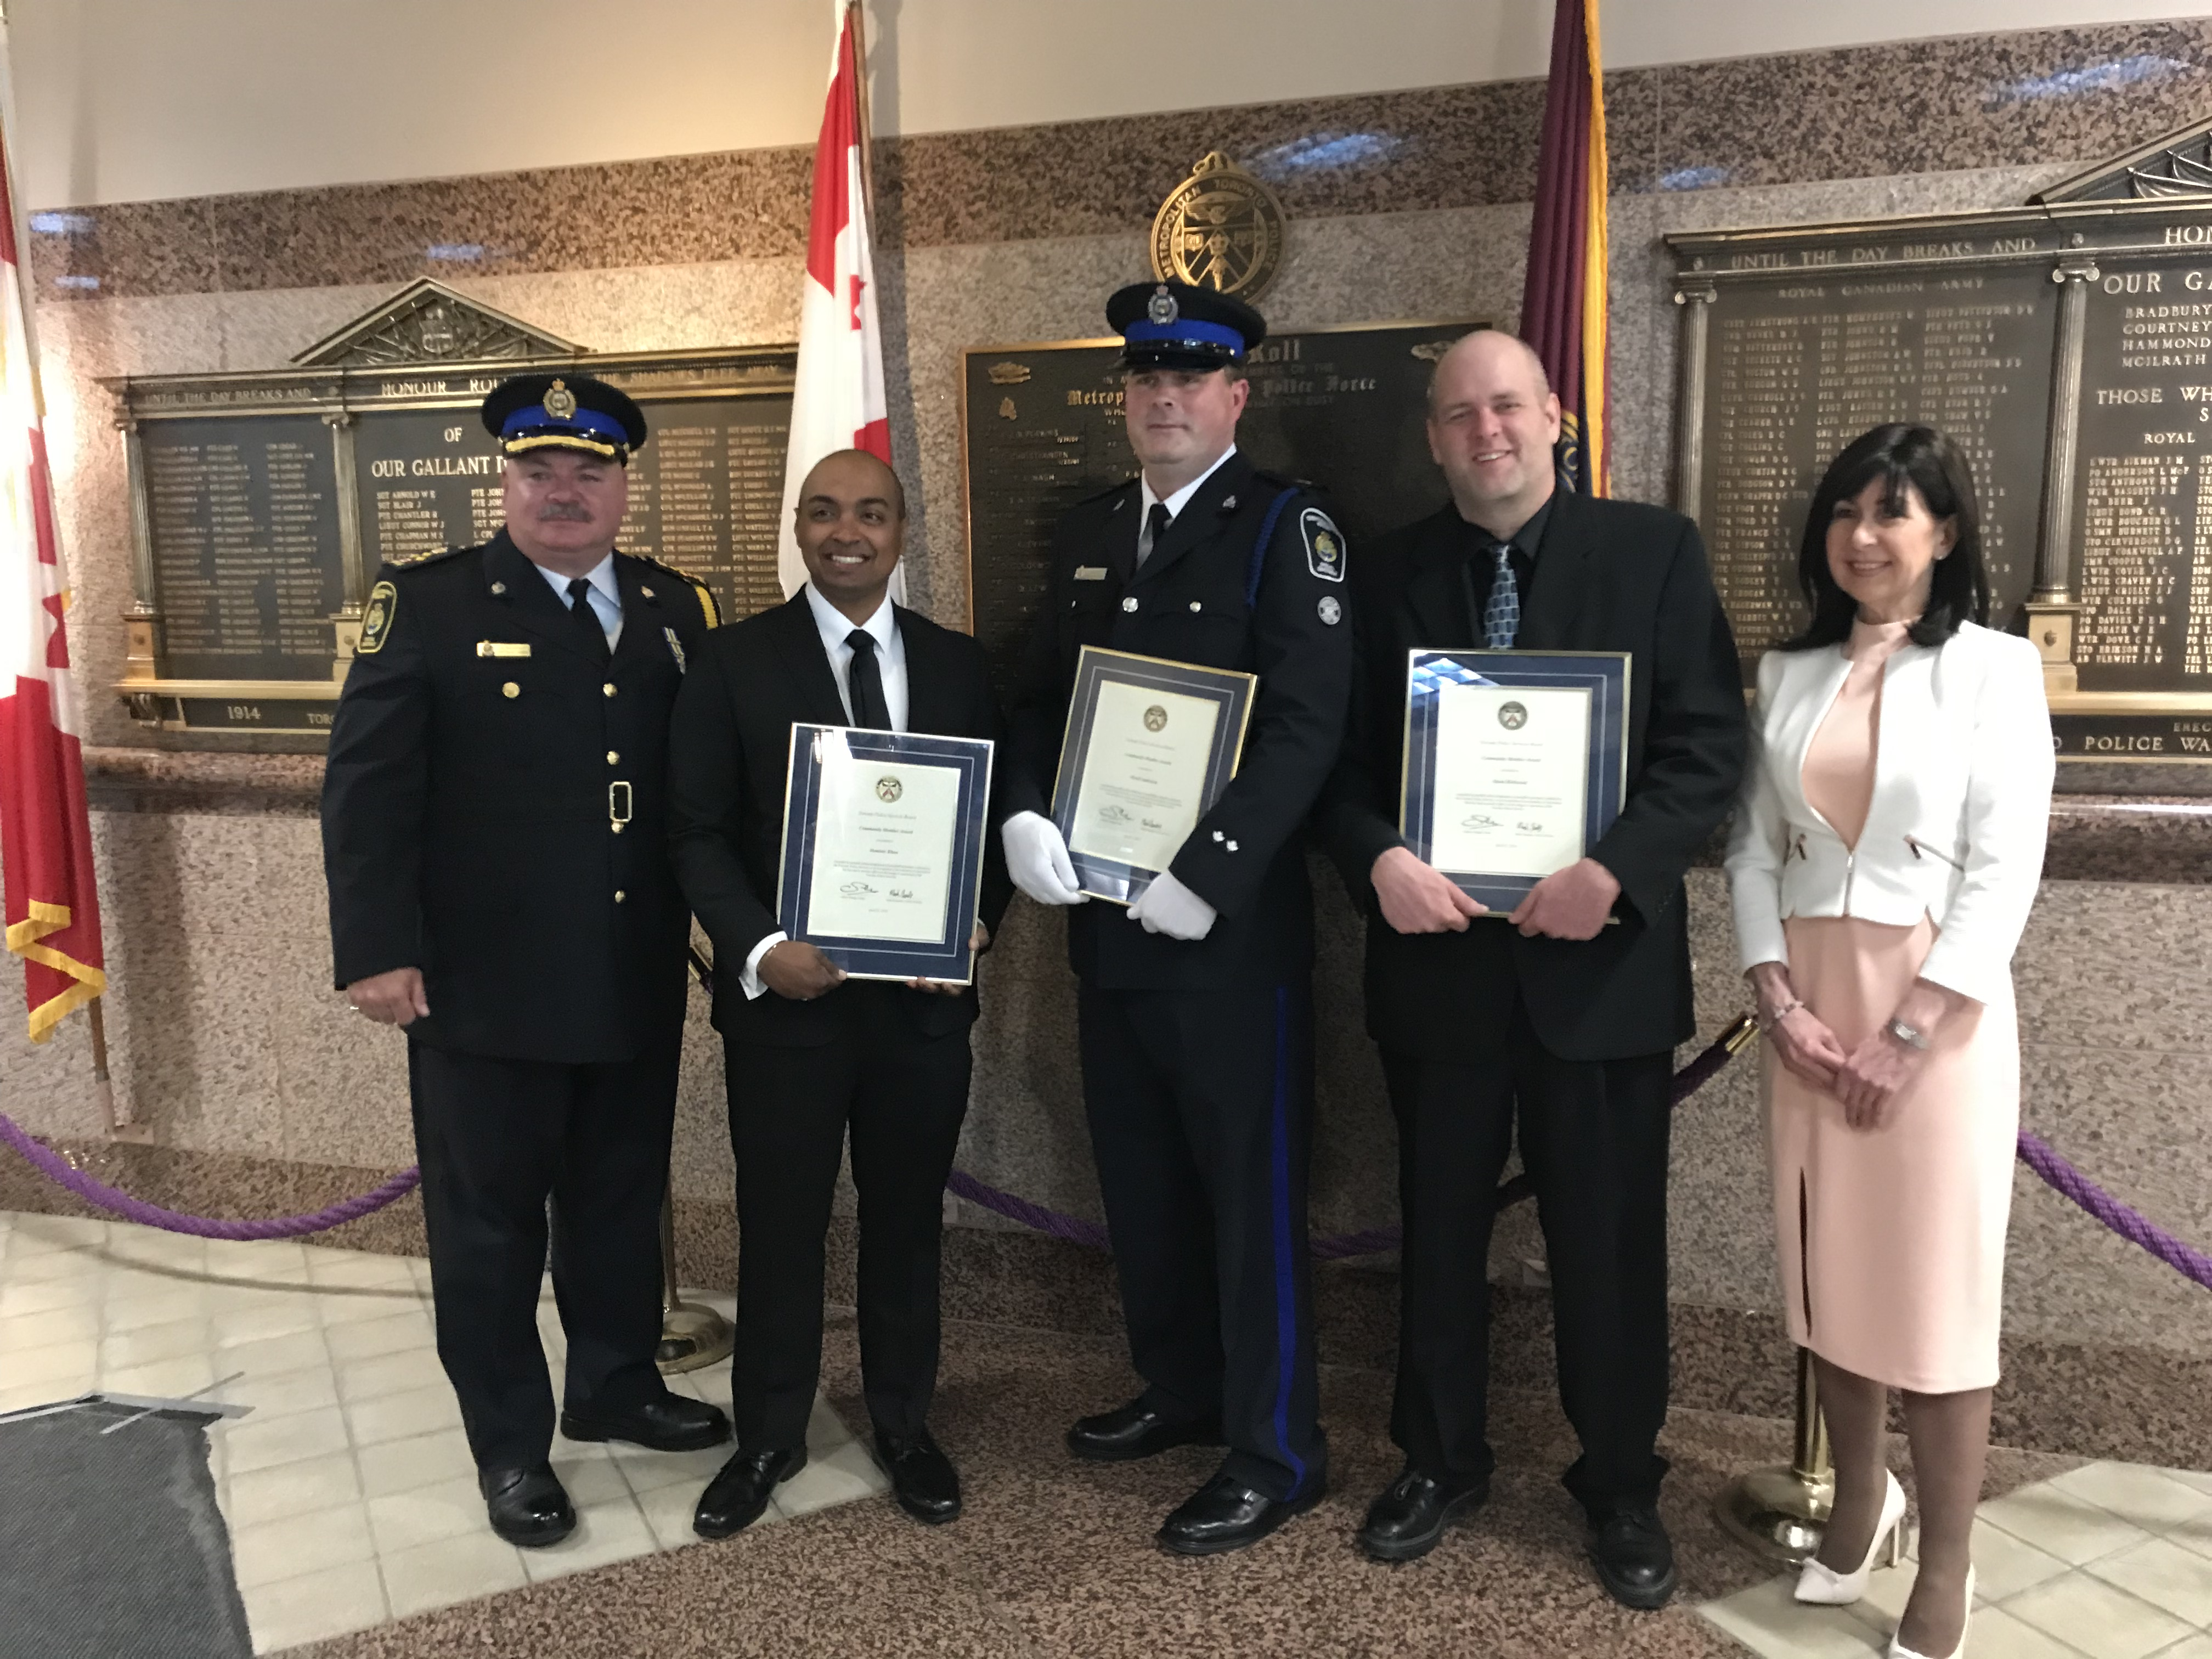 Group photo of three Community Safety Unit Special constables holding awards, next to the CSU Senior Director and TCHC CEO